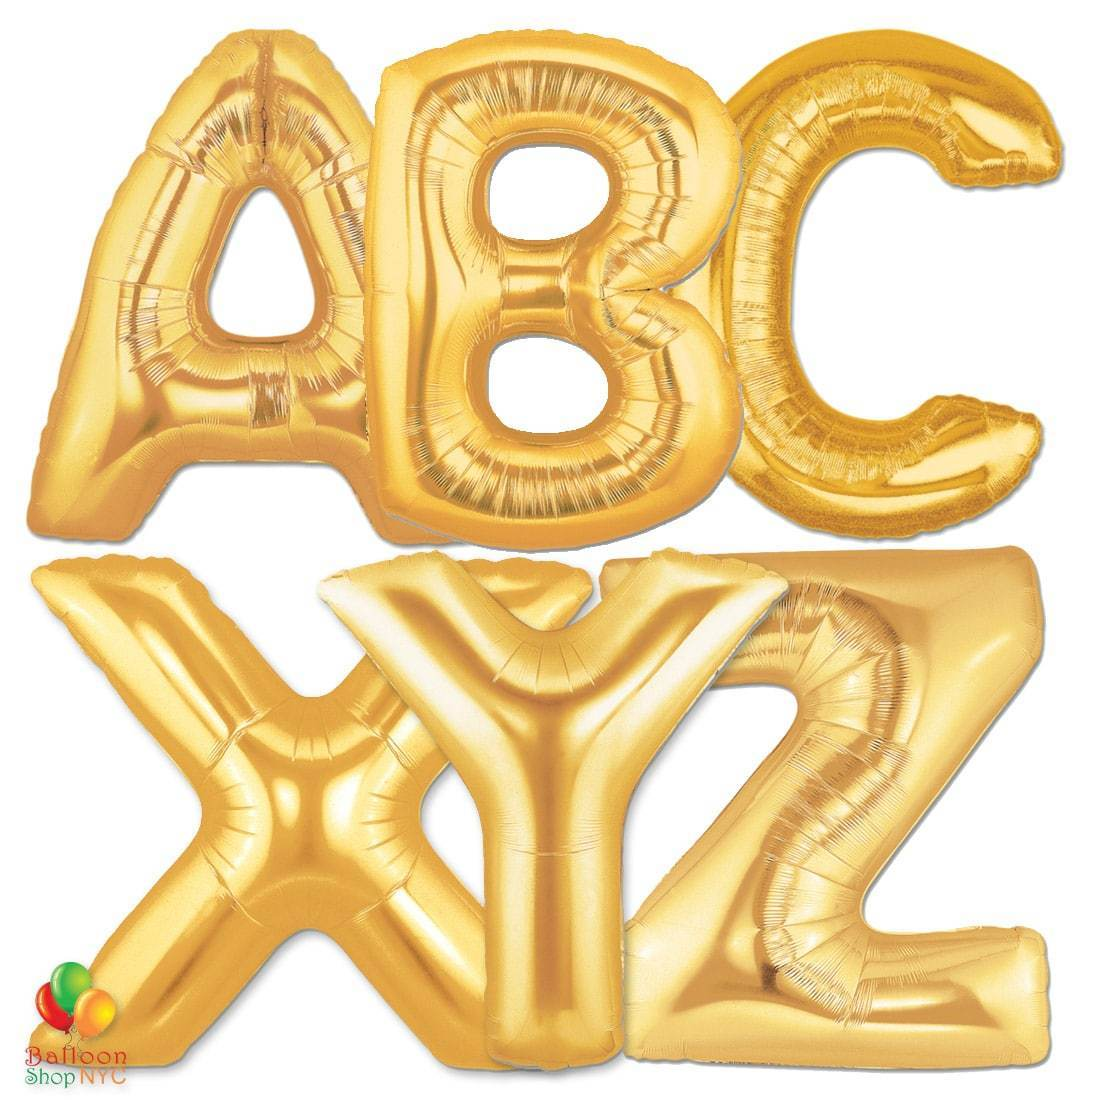 Foil balloon letters clipart clipart library stock Express Order Gold Letters Giant Foil Balloon 40 Inch - Balloon Shop NYC  delivery clipart library stock